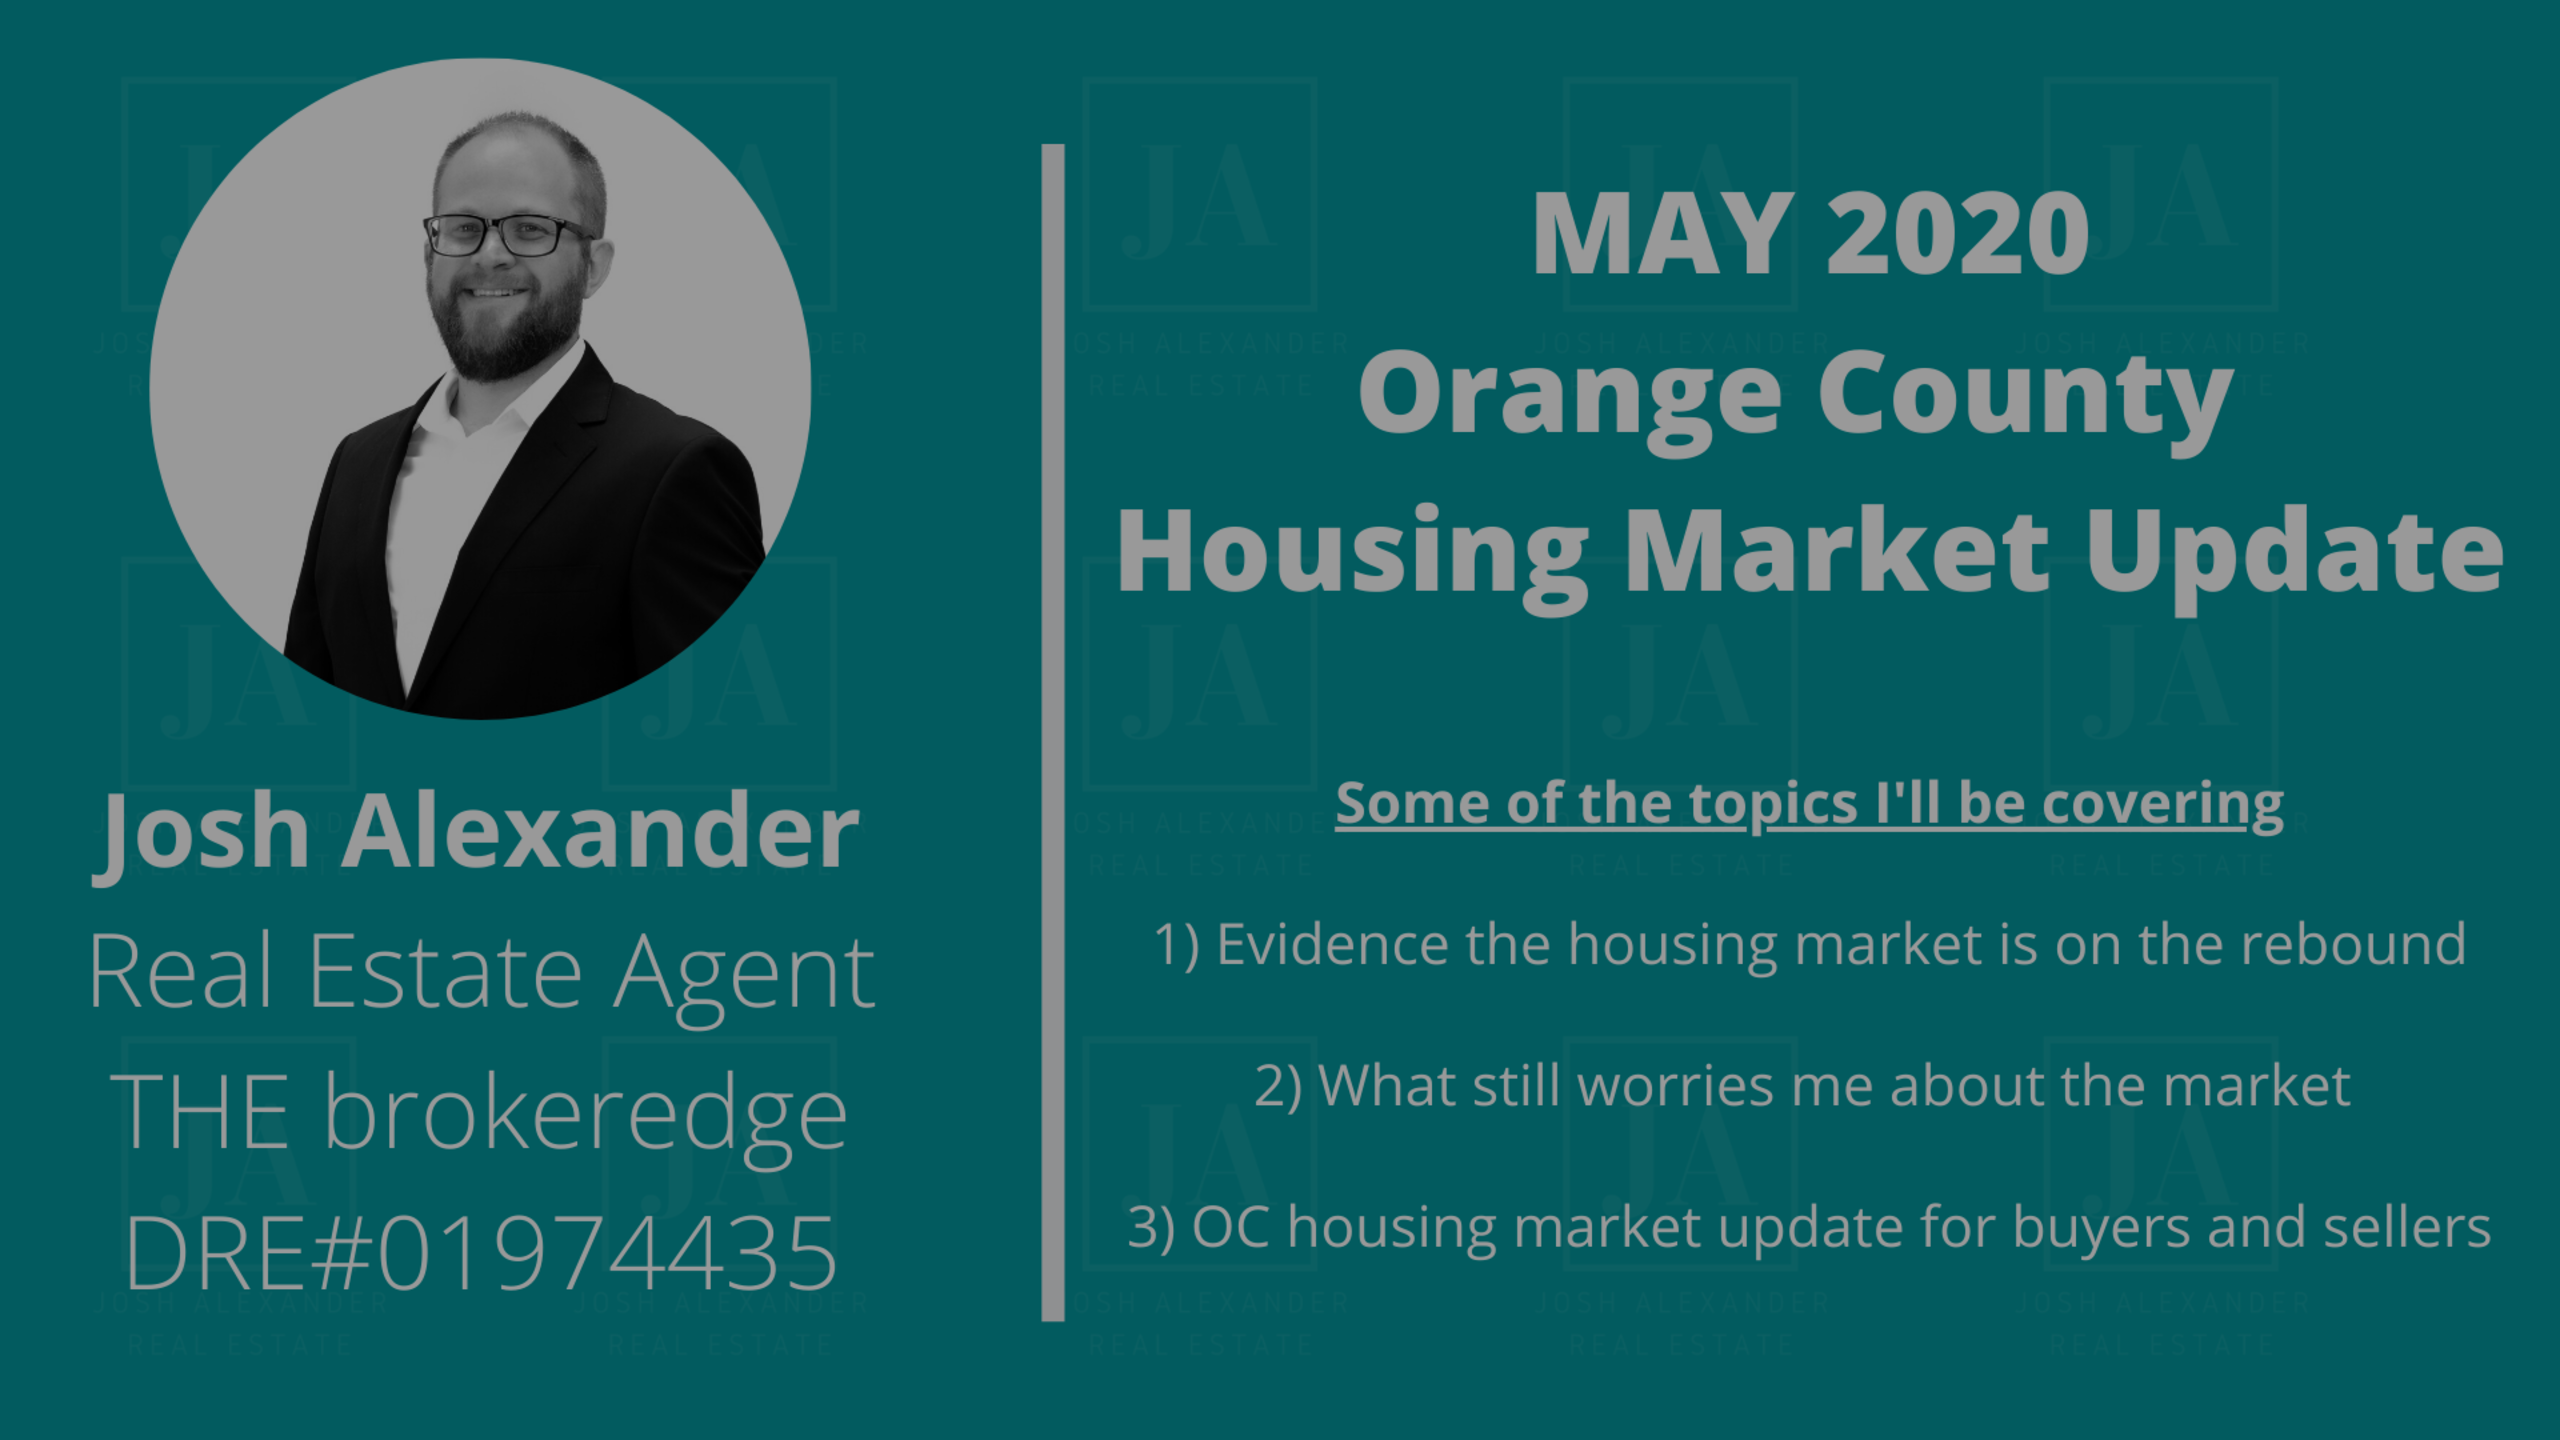 May 2020 Orange County Housing Market Update